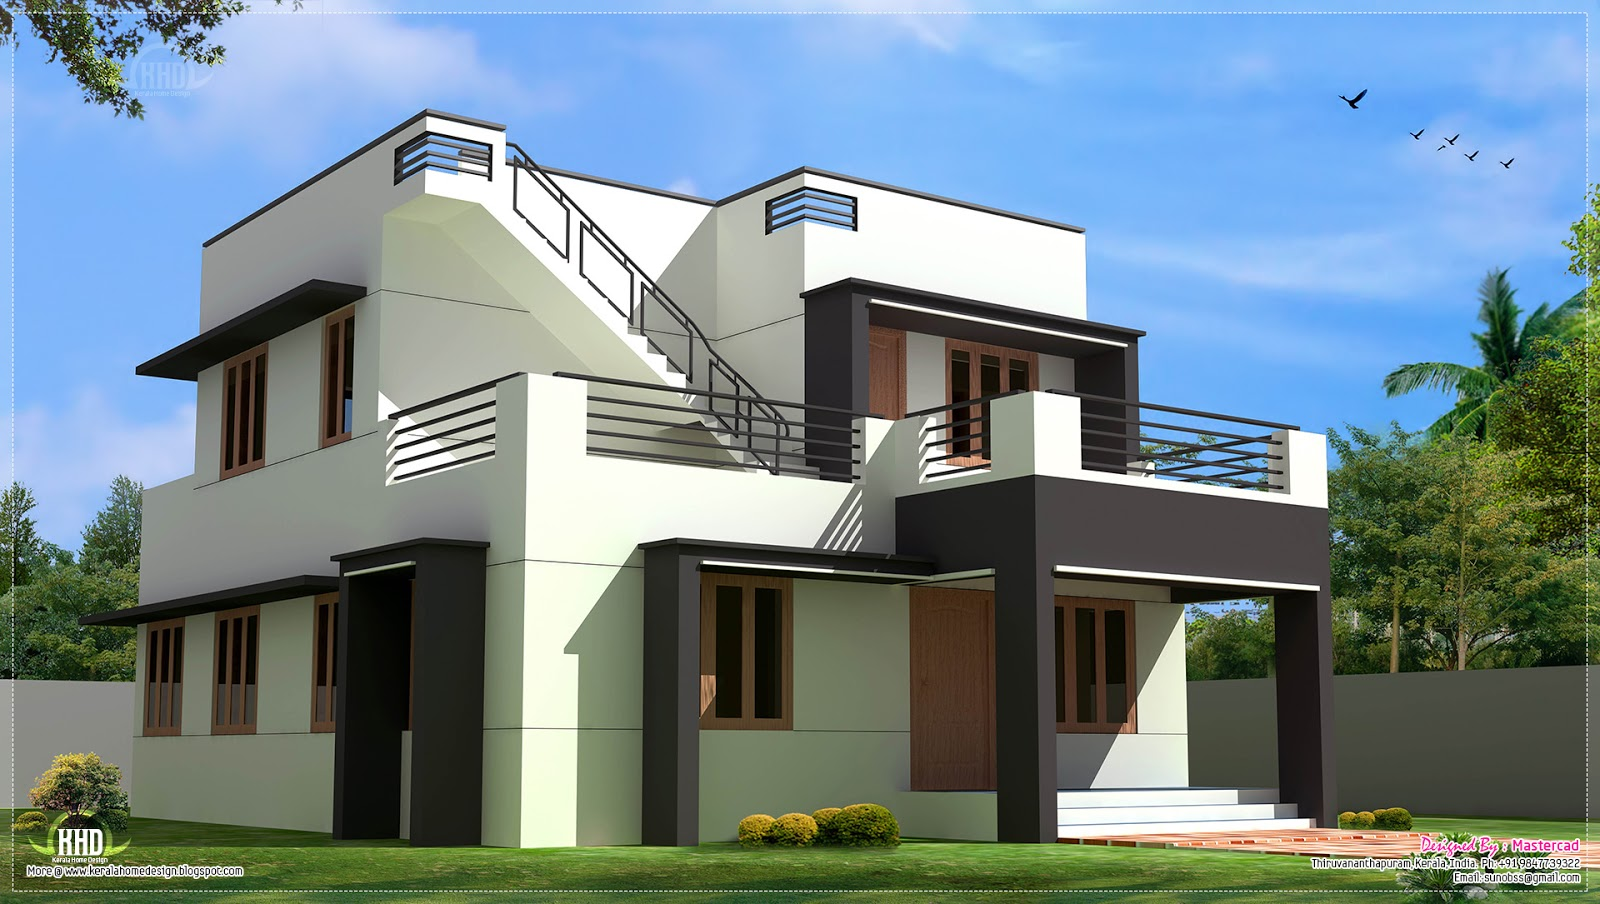 Modern house design in 1700 kerala home design for Best home design